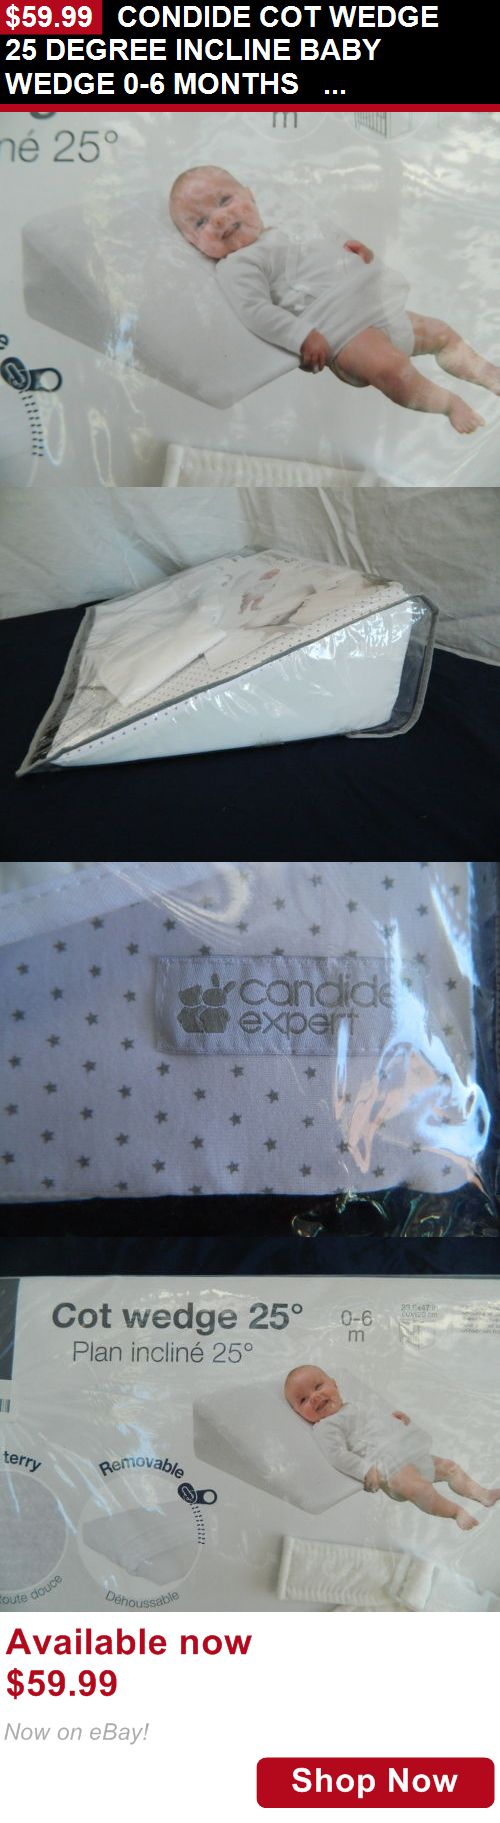 Baby Safety Sleep Positioners: Condide Cot Wedge 25 Degree Incline Baby Wedge 0-6 Months Gm490 BUY IT NOW ONLY: $59.99